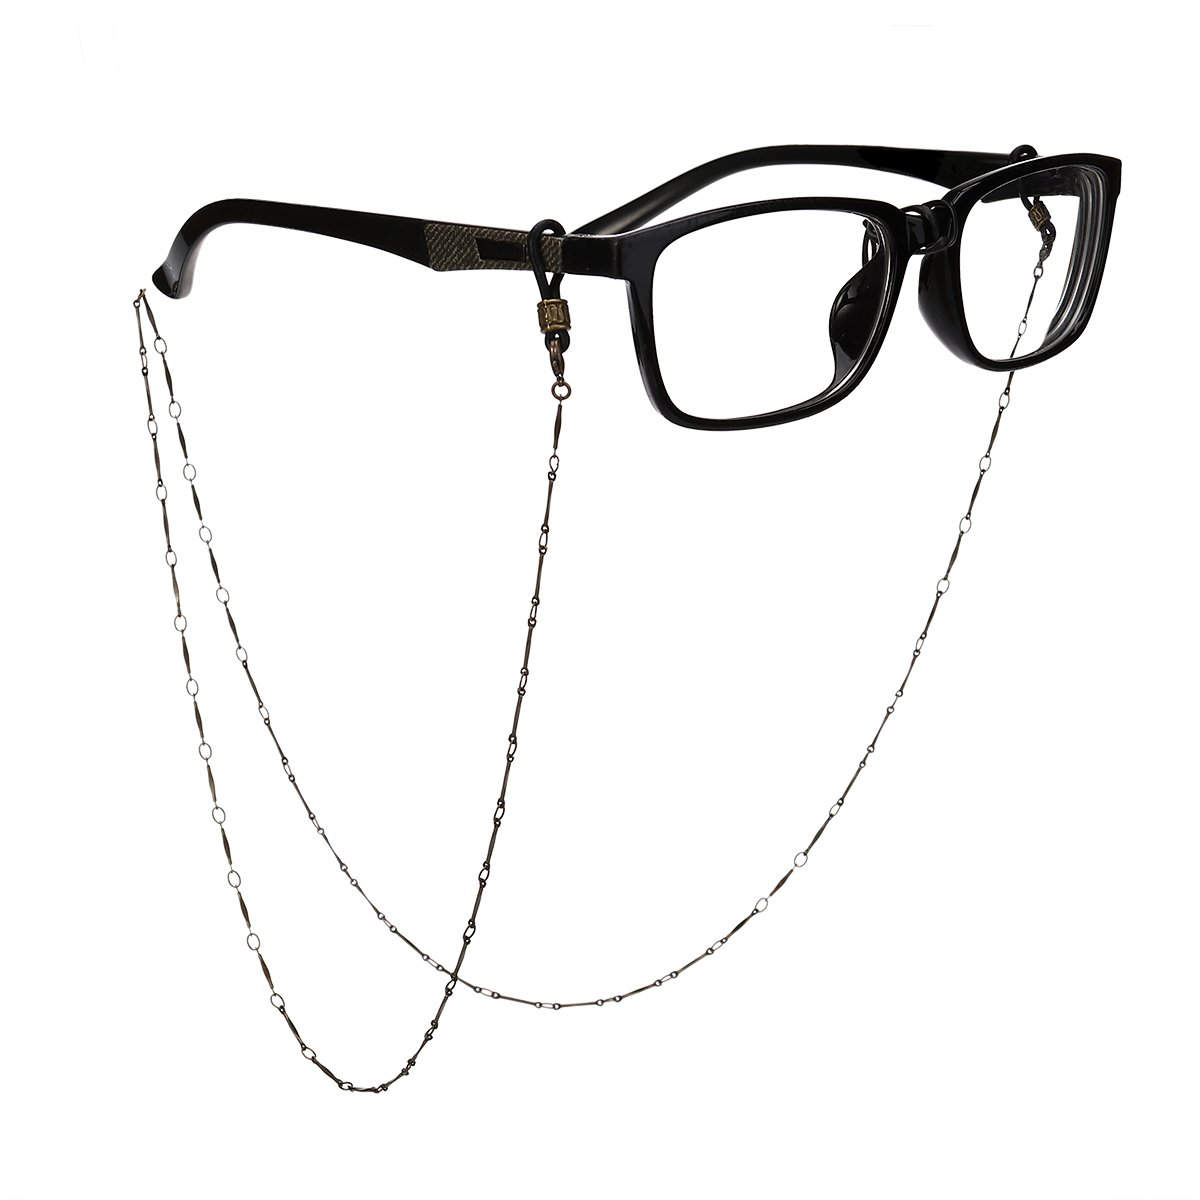 LUOEM Bronze Glasses Chain Eyeglass Necklace Cord Strap Sunglass Holder Lanyard Neck Holder Neck Cord G2NT155052A0IOH5094